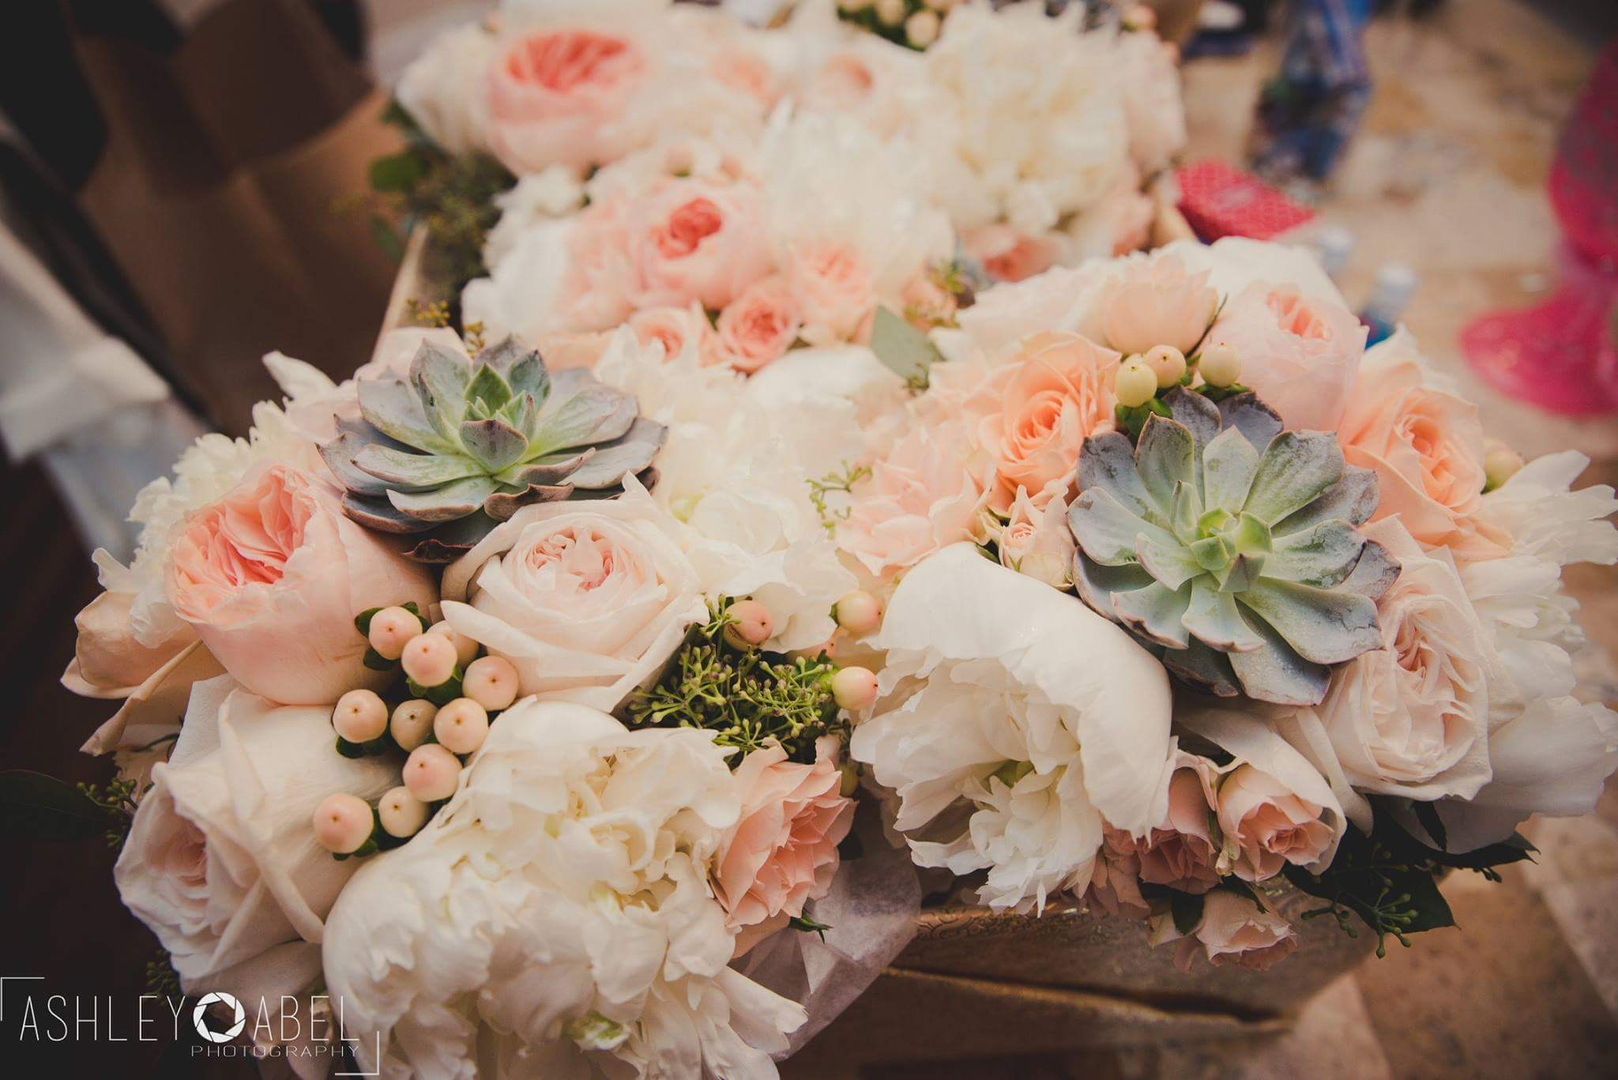 Home full service connecticut florist offering beautiful fresh floral designs for all occassions izmirmasajfo